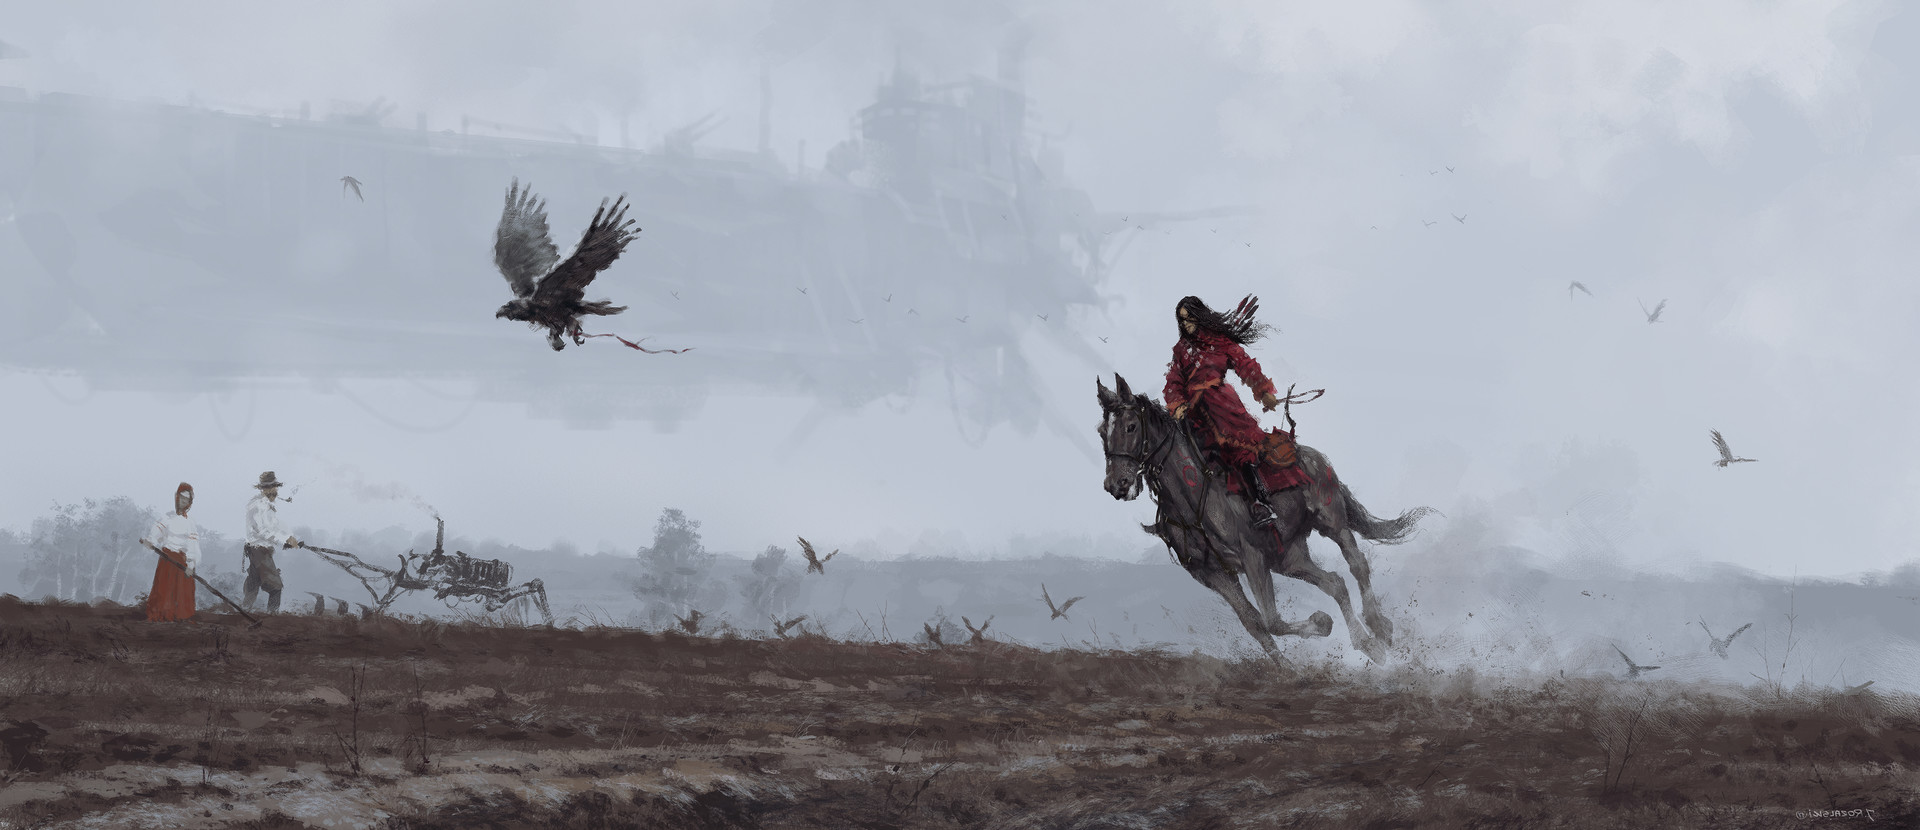 Jakub rozalski 1920 on the wings of the wind